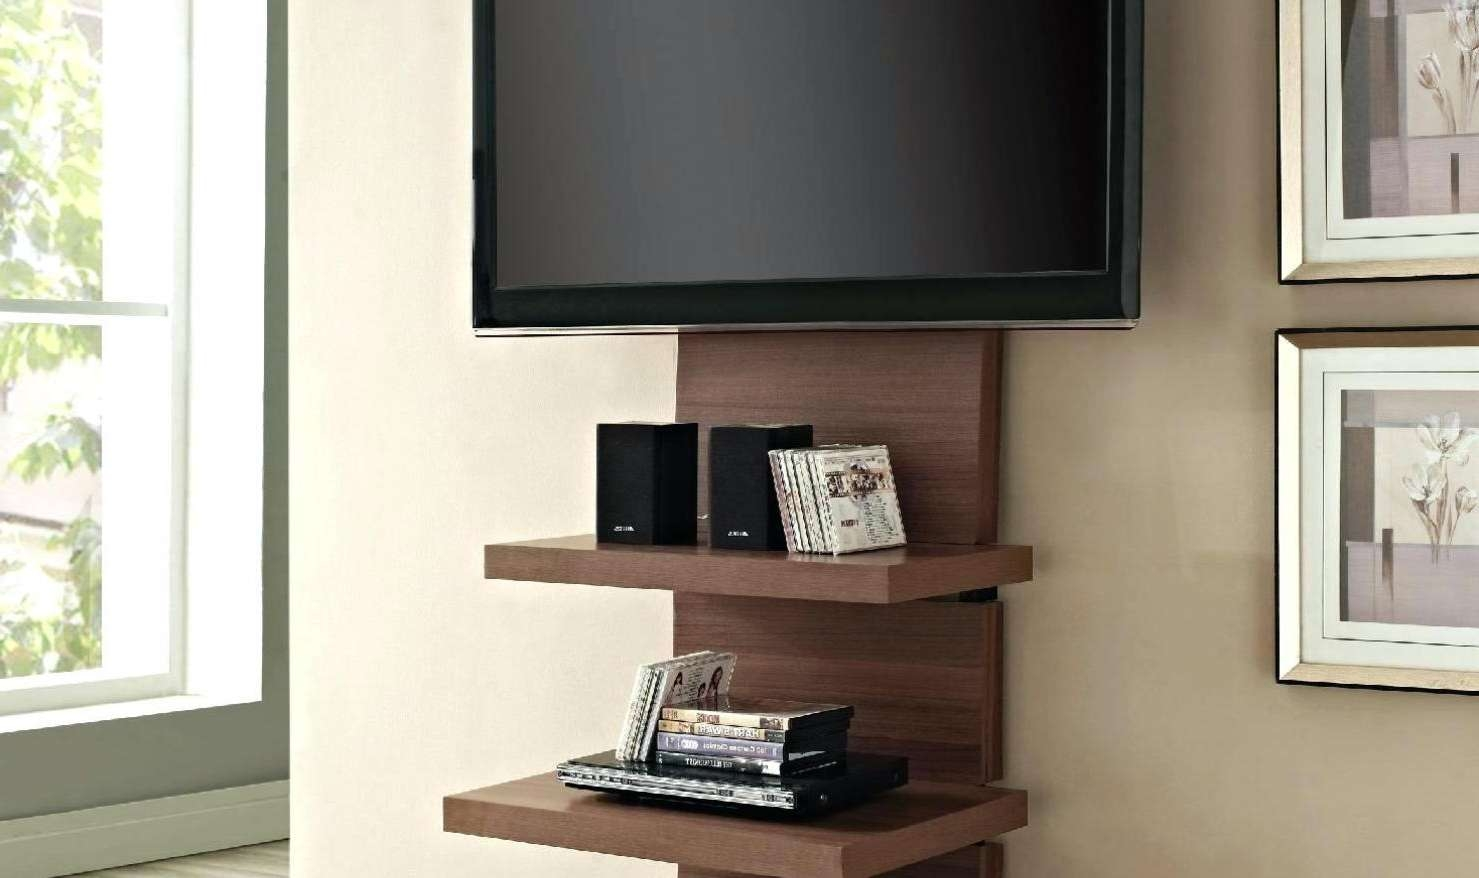 Cabinet : Ikea Tv Cabinet Ideas Hypnotizing Ikea Tv Stands Ideas Pertaining To Wall Mounted Tv Cabinets Ikea (View 3 of 20)